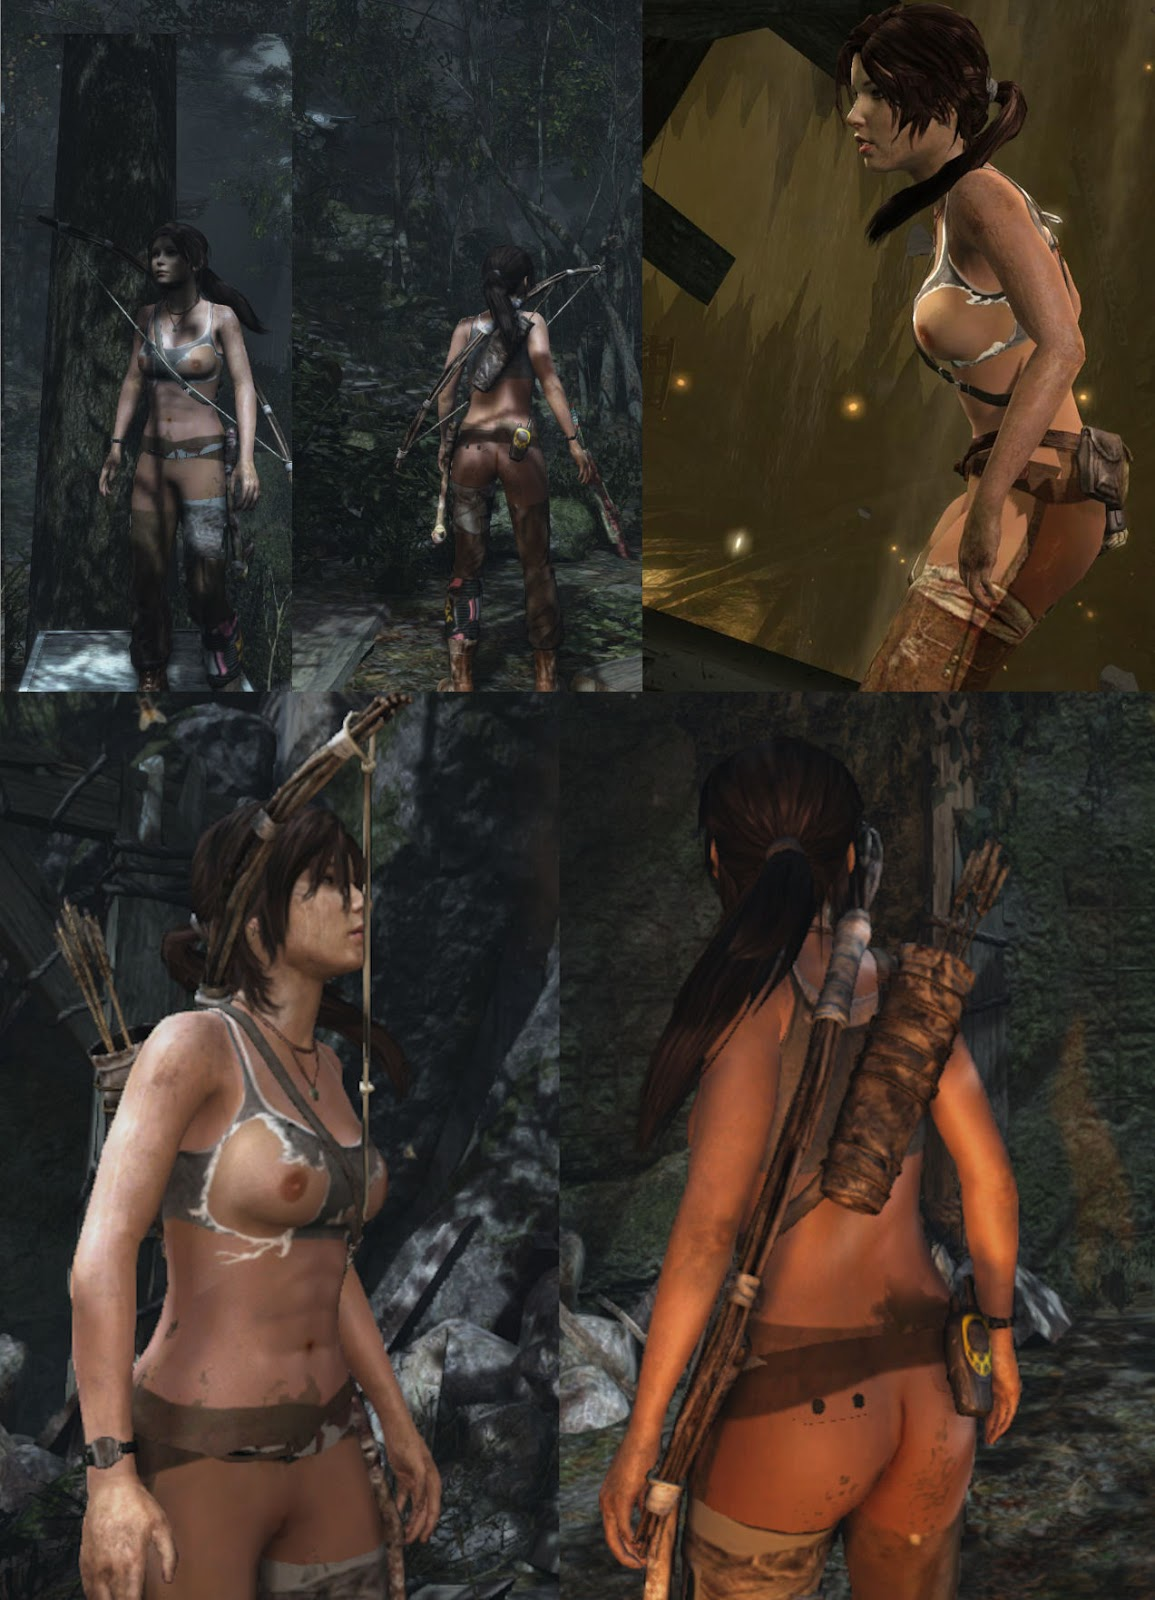 Lana nude tomb raider nsfw streaming